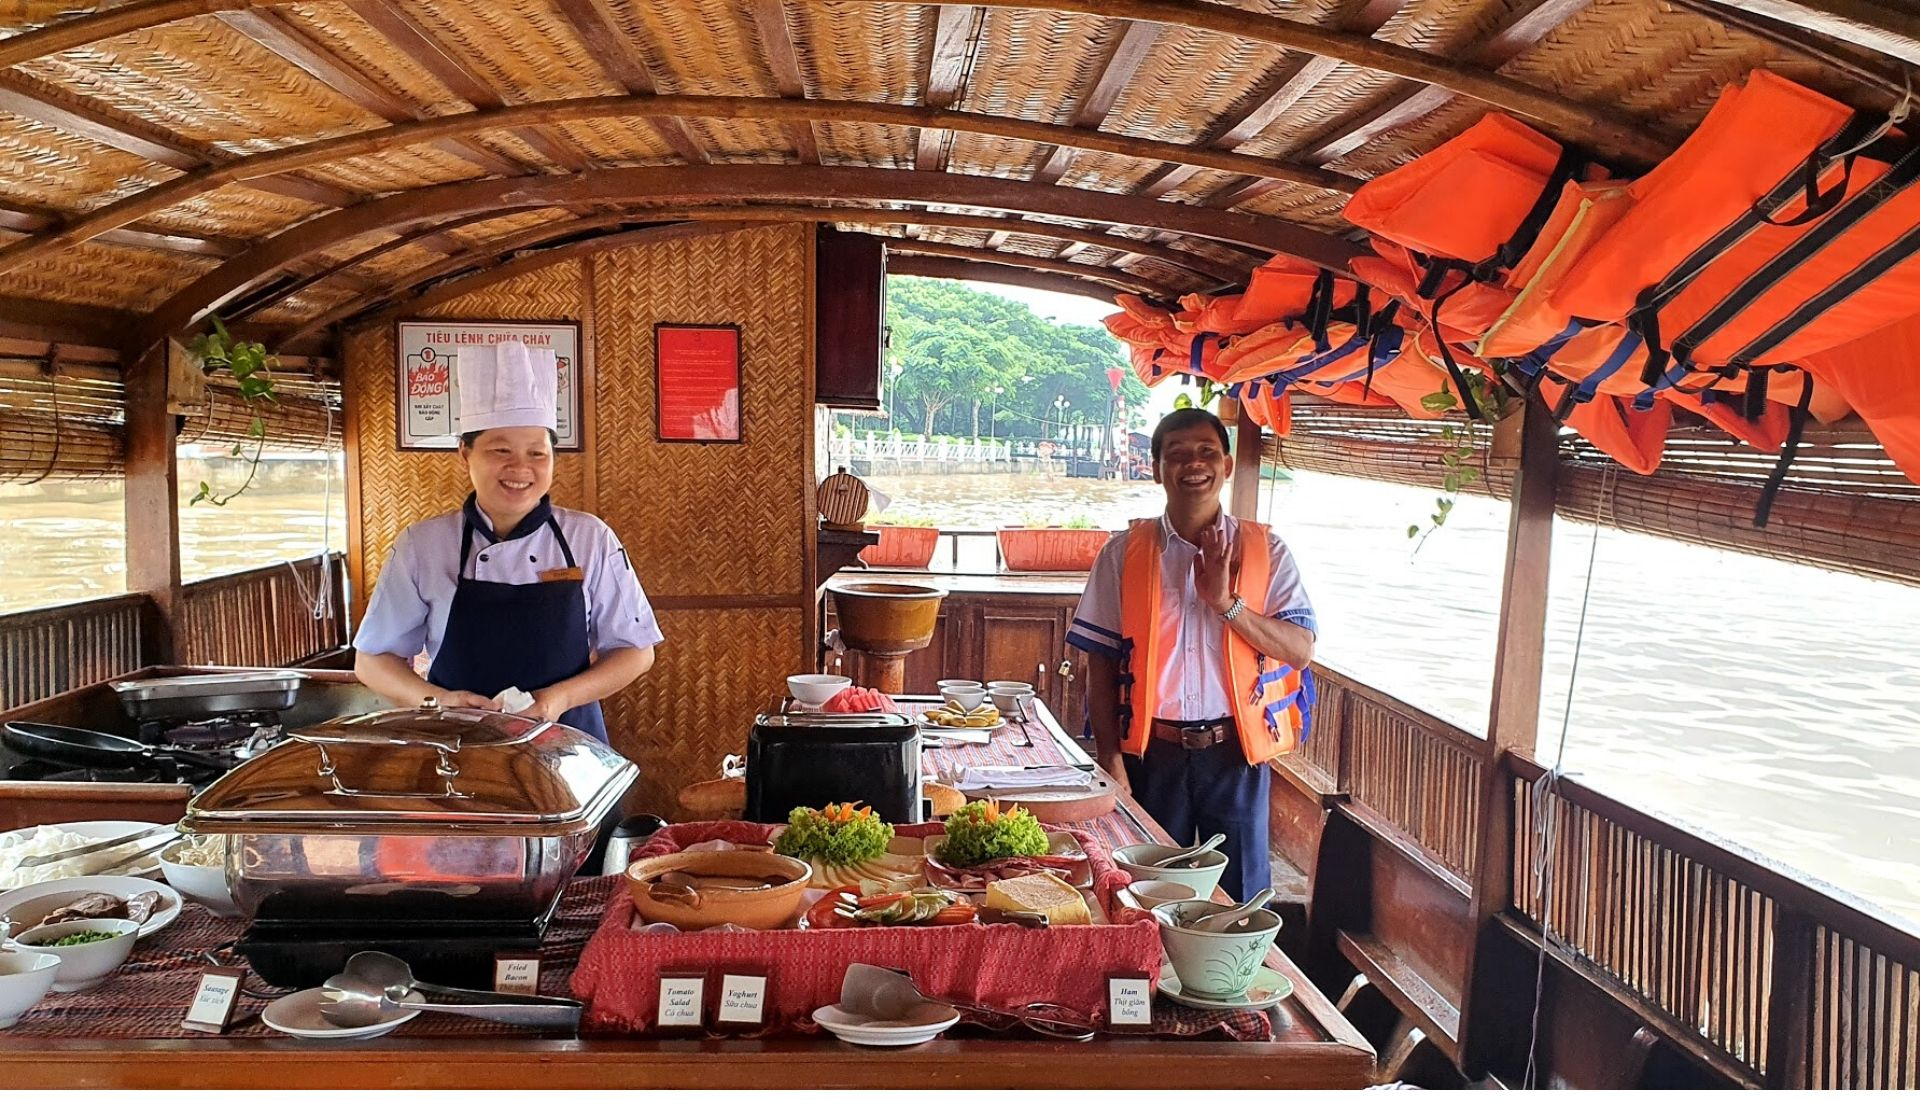 Buffett breakfast onboard the Mekong Princess